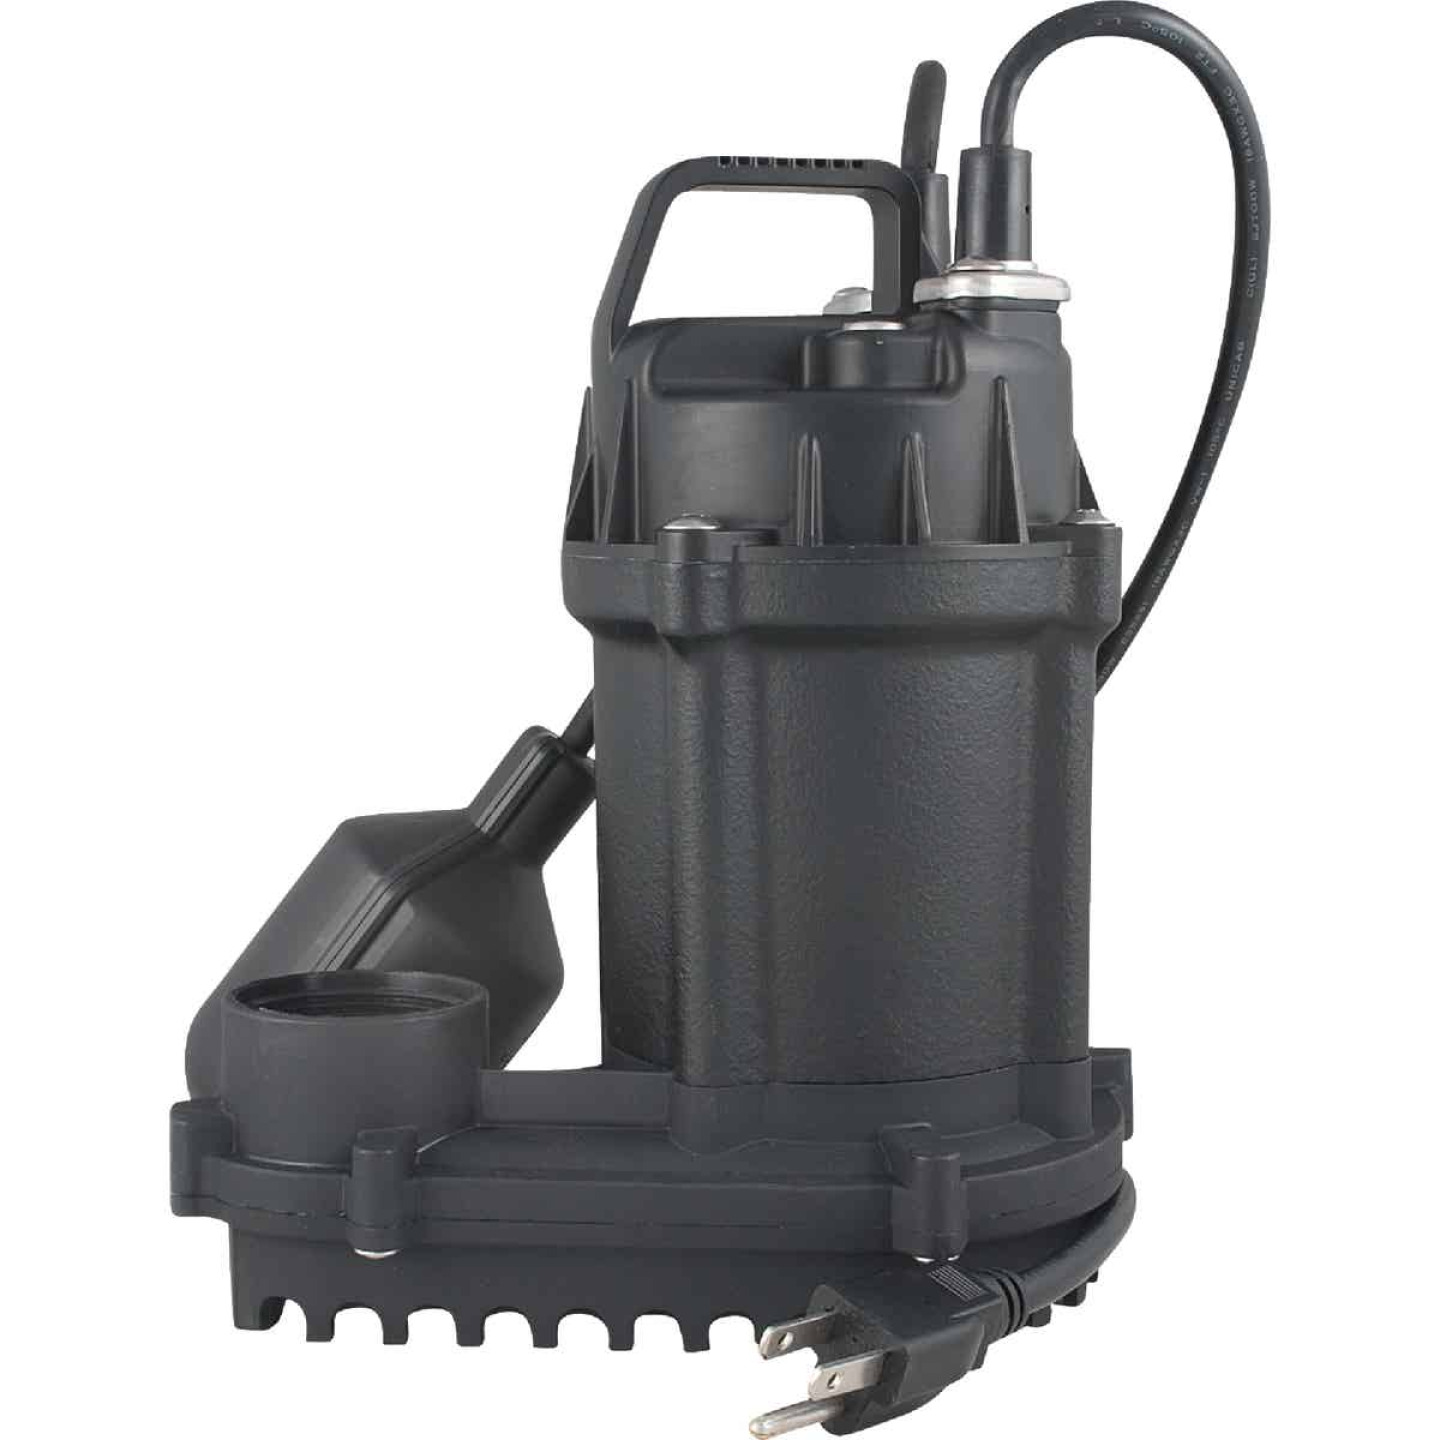 Do it Best 1/3 HP 115V Cast-Iron Submersible Sump Pump Image 1